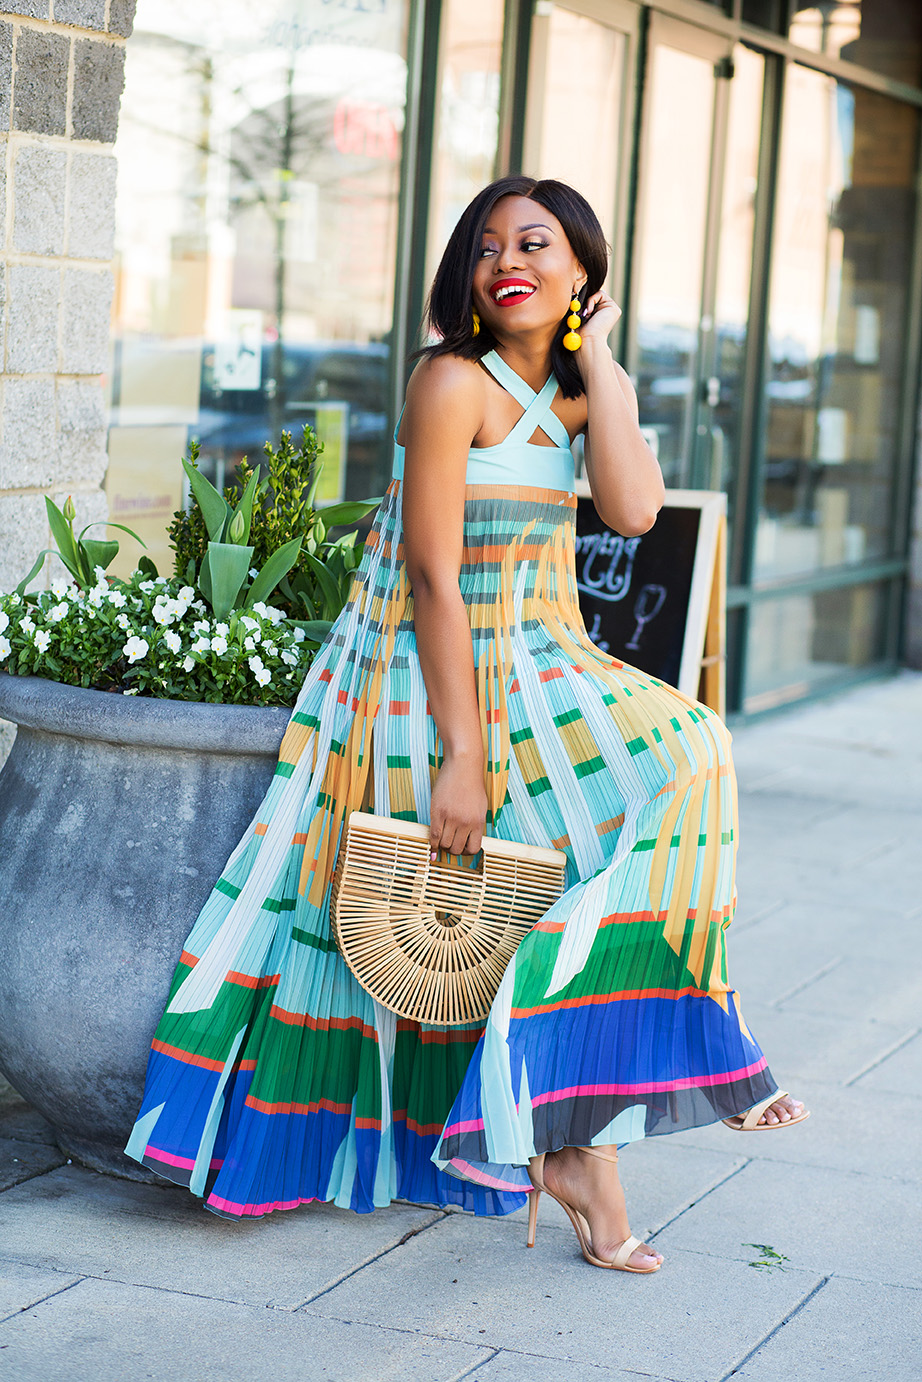 Stella-adewunmi-jadore-fashion-in-spring-must-have-dress